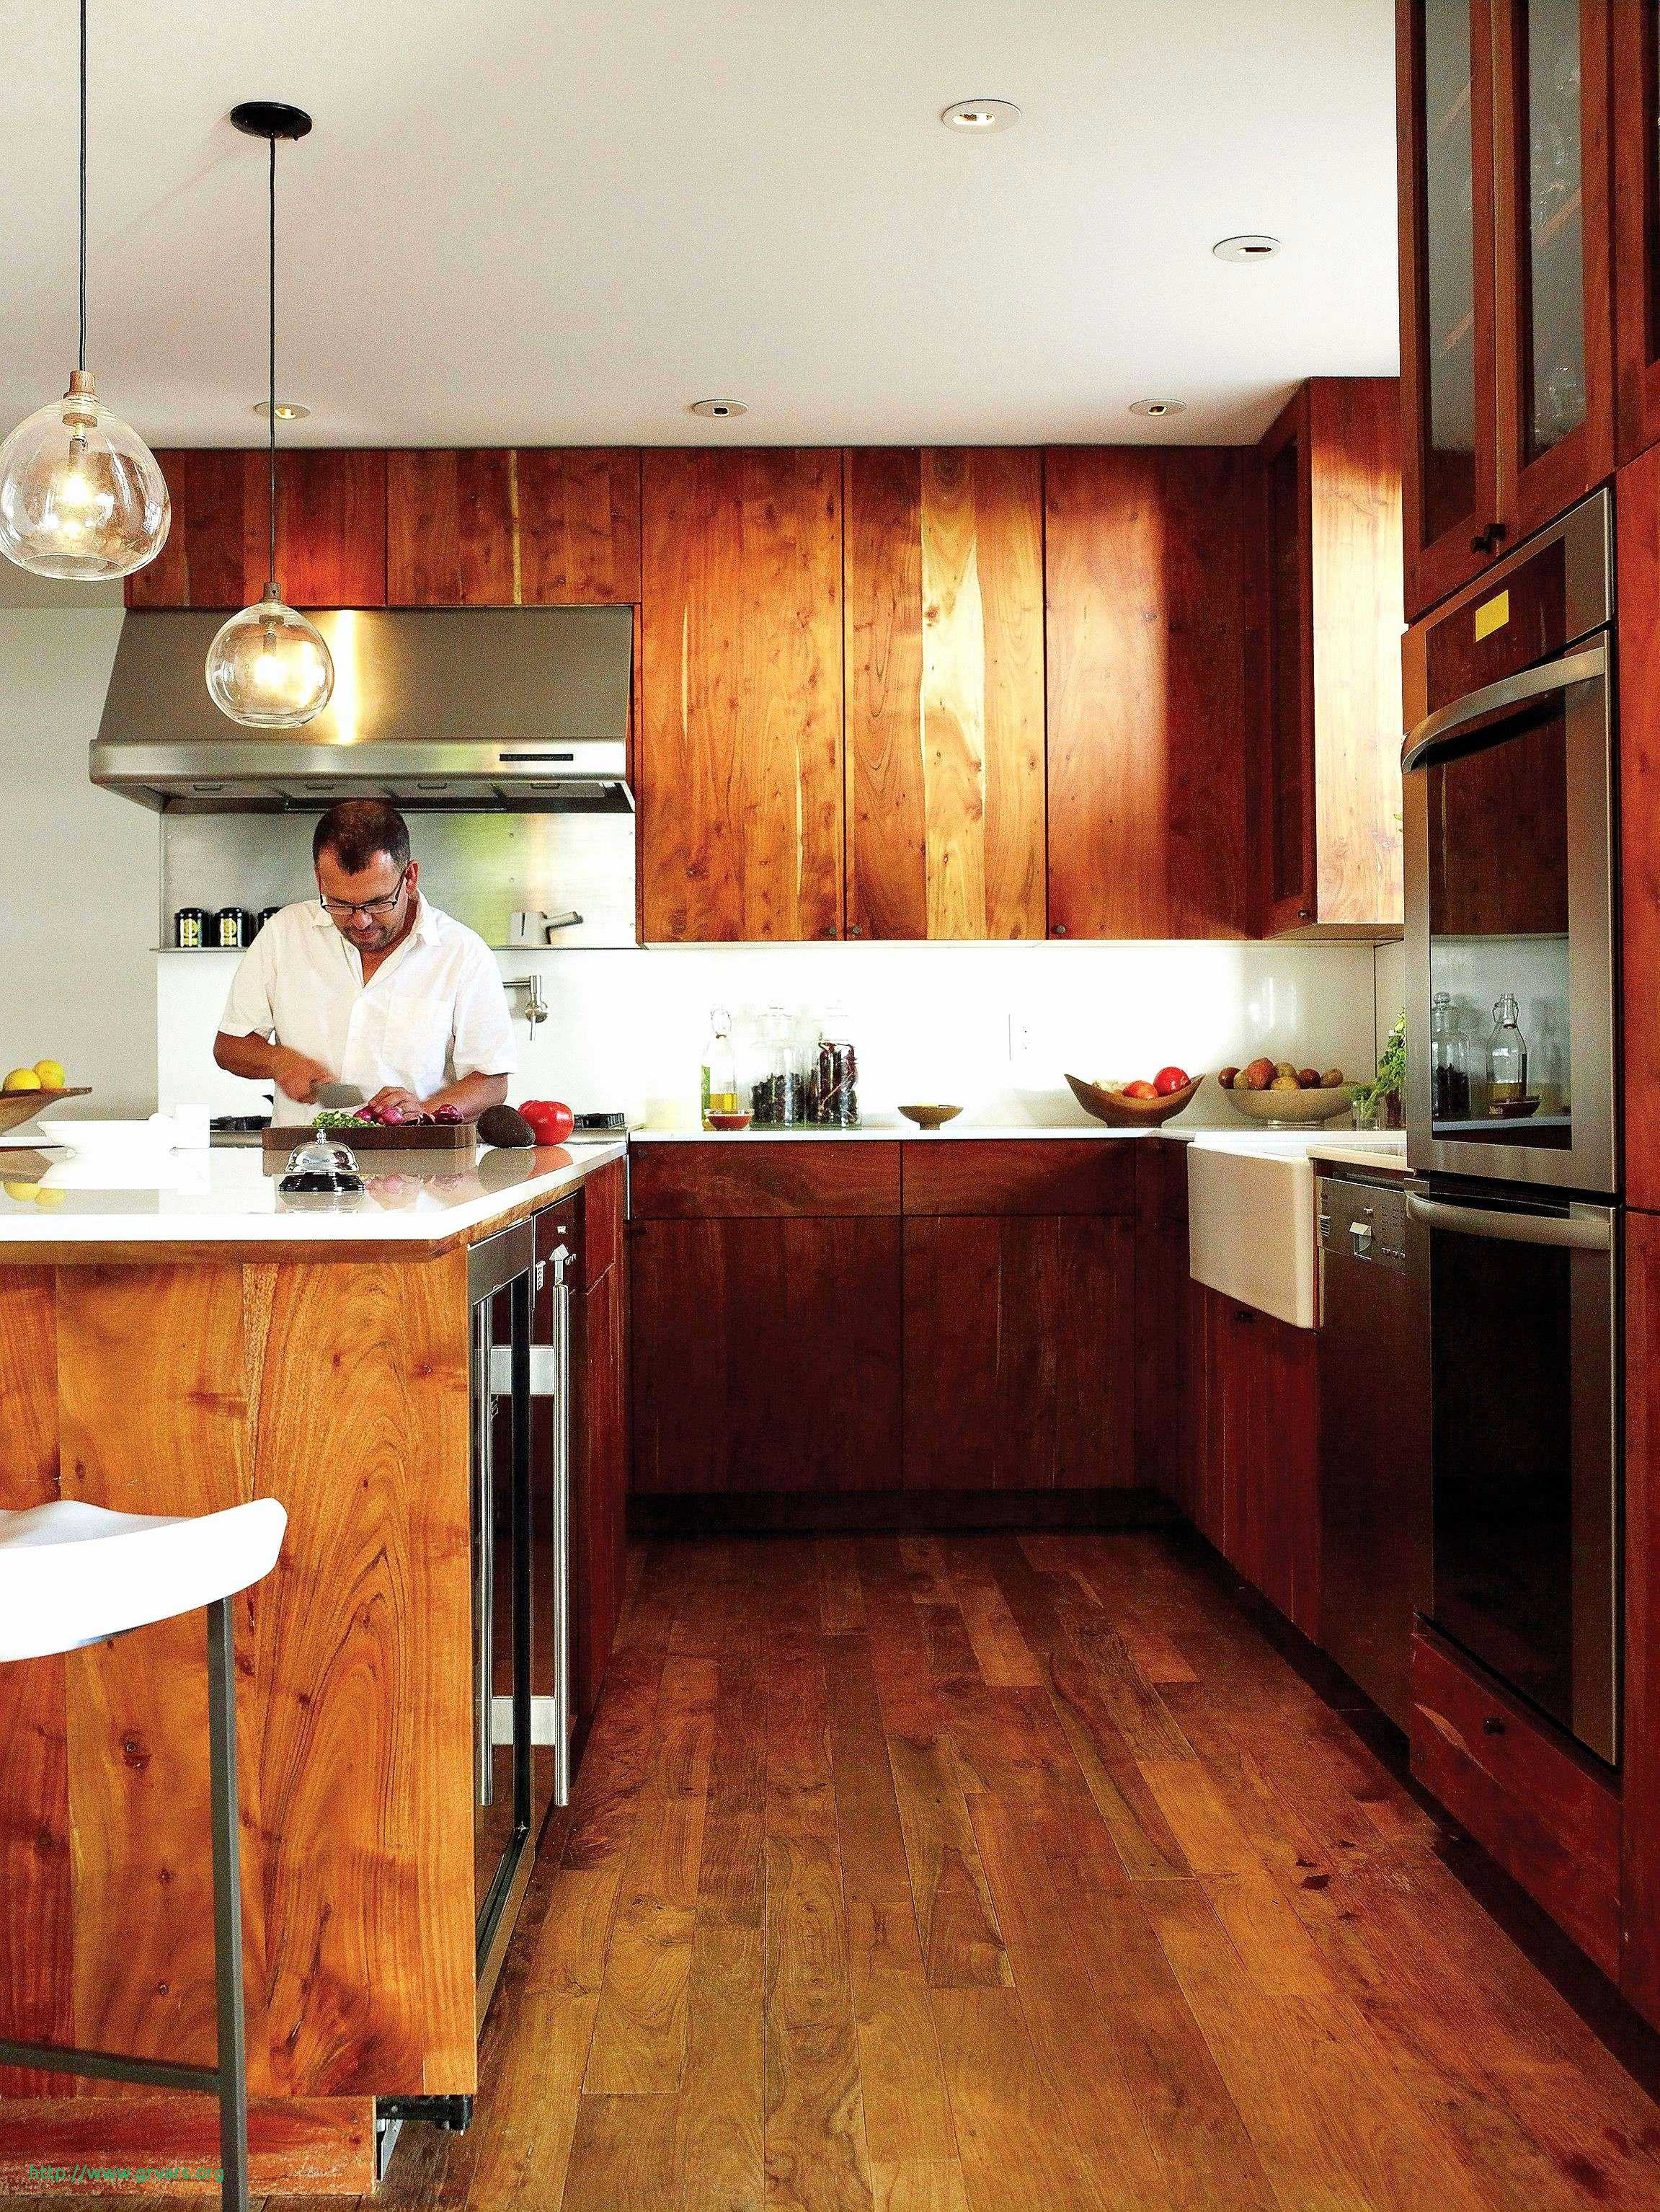 kitchens with hardwood floors and white cabinets of 24 meilleur de flooring before or after cabinets ideas blog intended for flooring before or after cabinets meilleur de luxury 30 white solid wood kitchen cabinets masterpieces